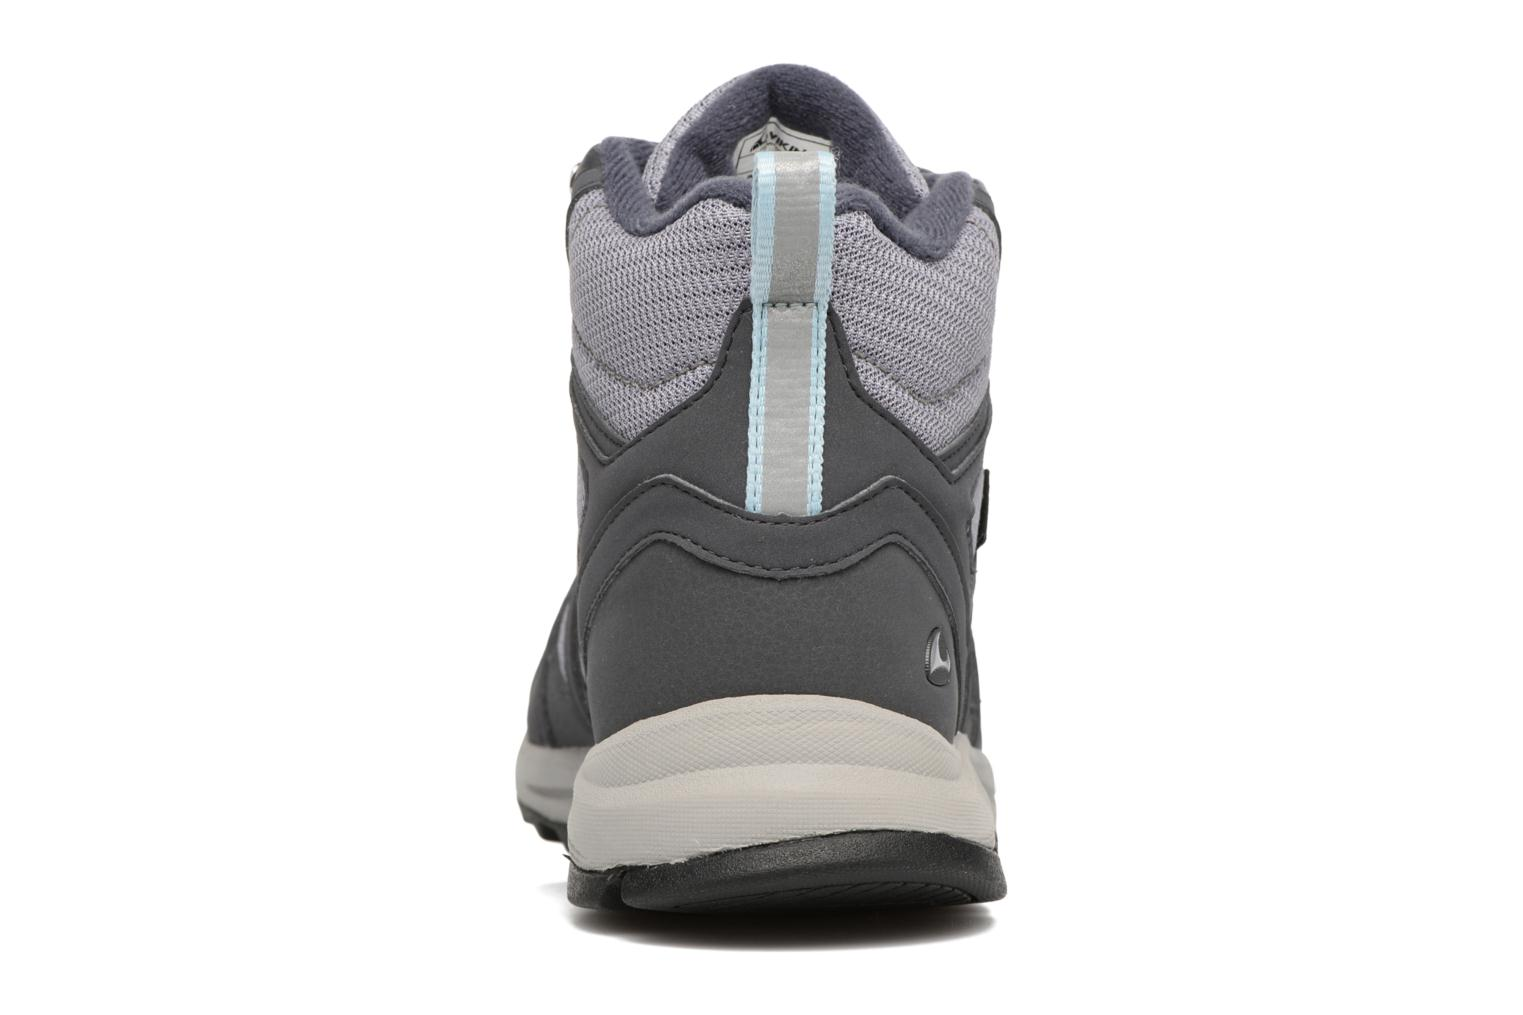 IMPULSE MID W GREY/LIGHT BLUE